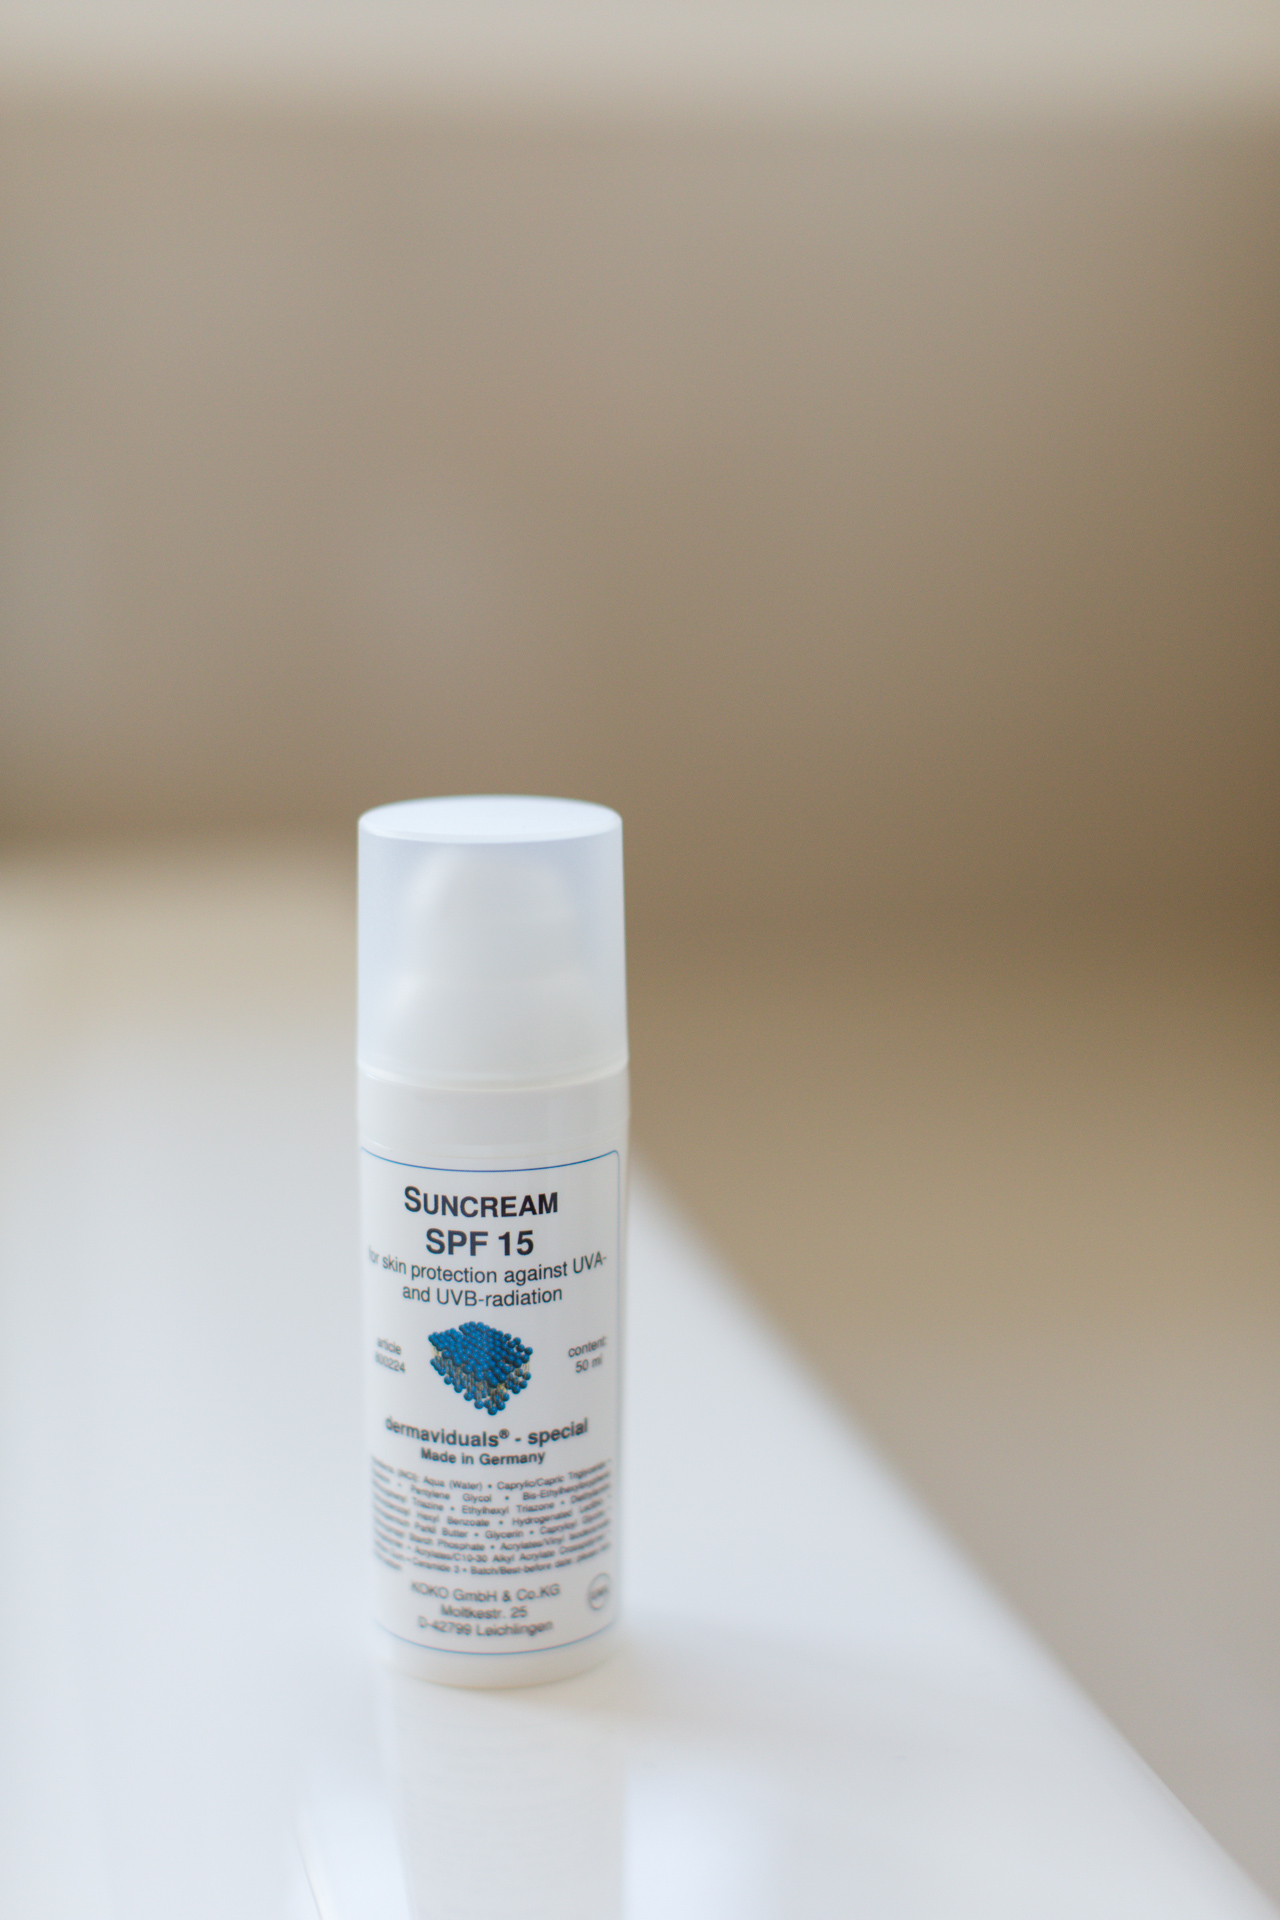 dermaviduals Suncream SPF 15, $55